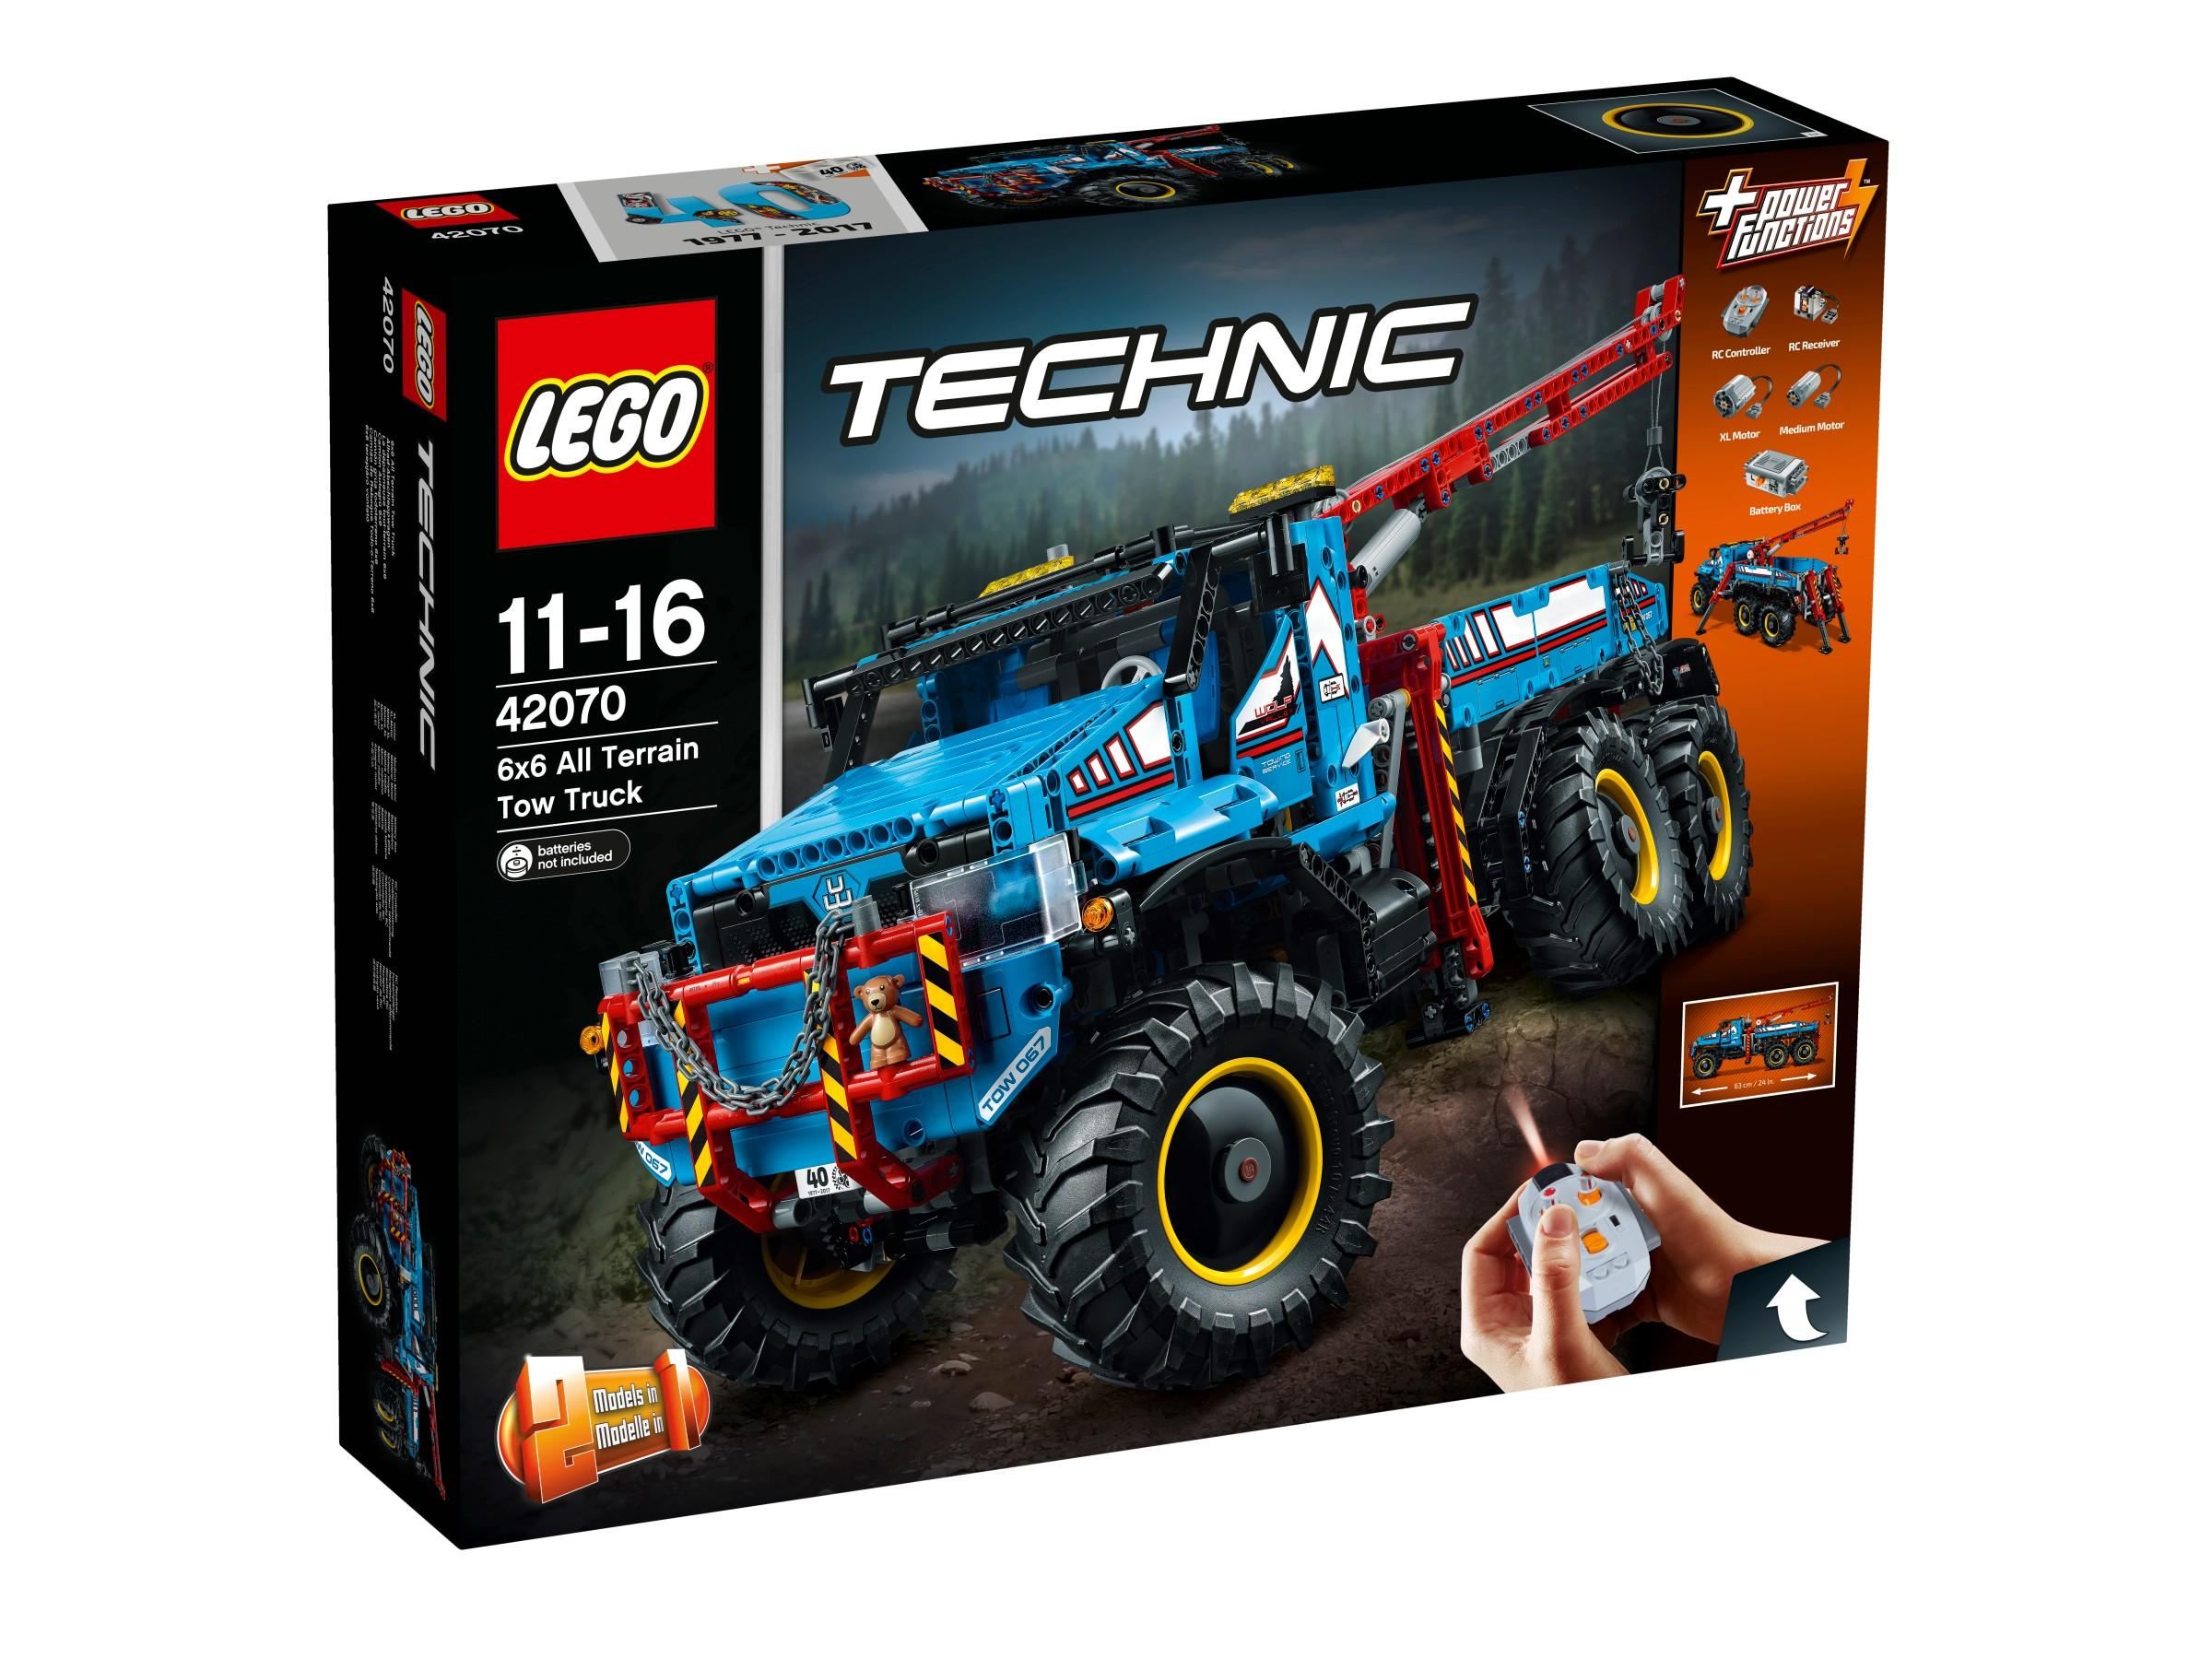 Lego Technic All Terrain Tow Truck